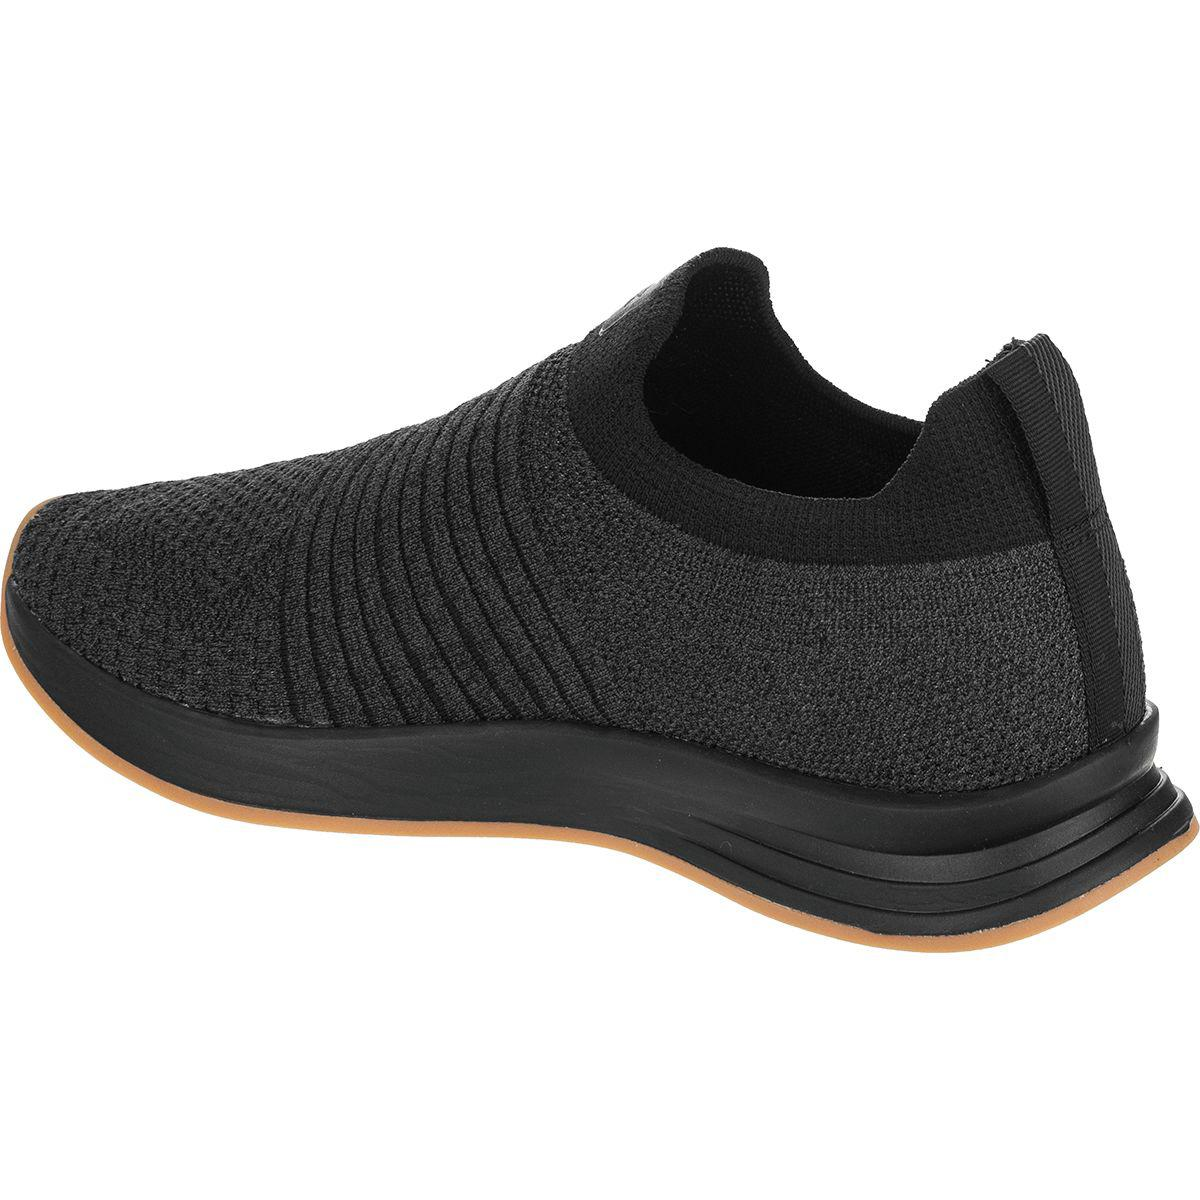 slip on shoes under armour Online